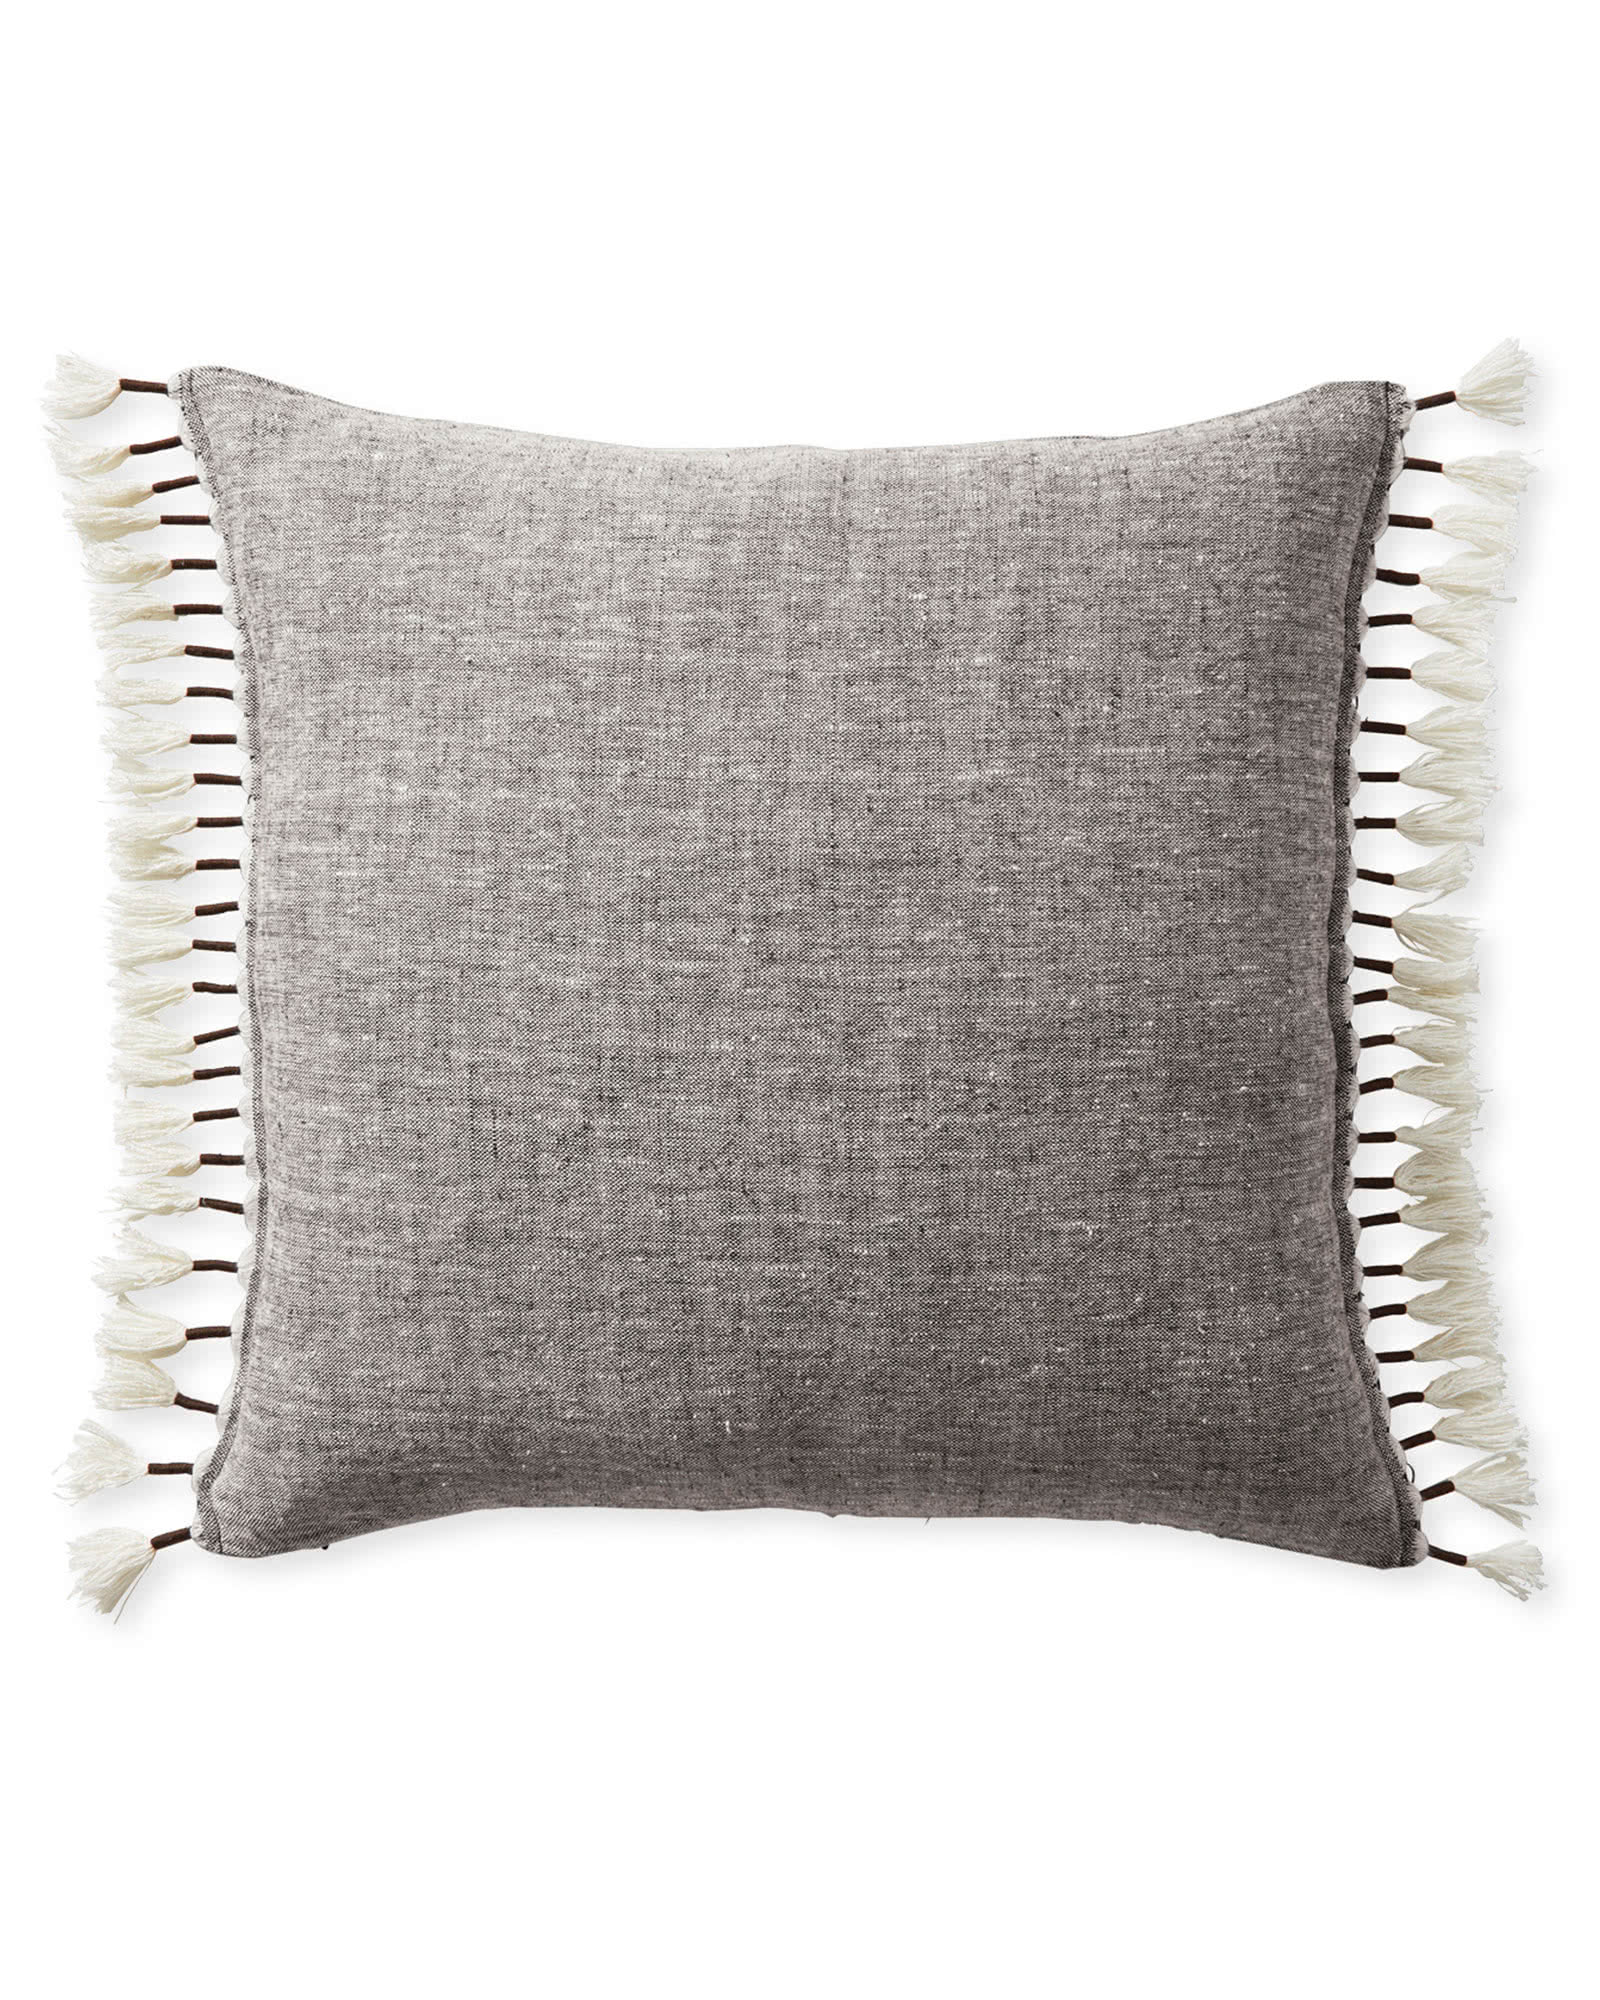 Topanga Pillow Cover, Earth